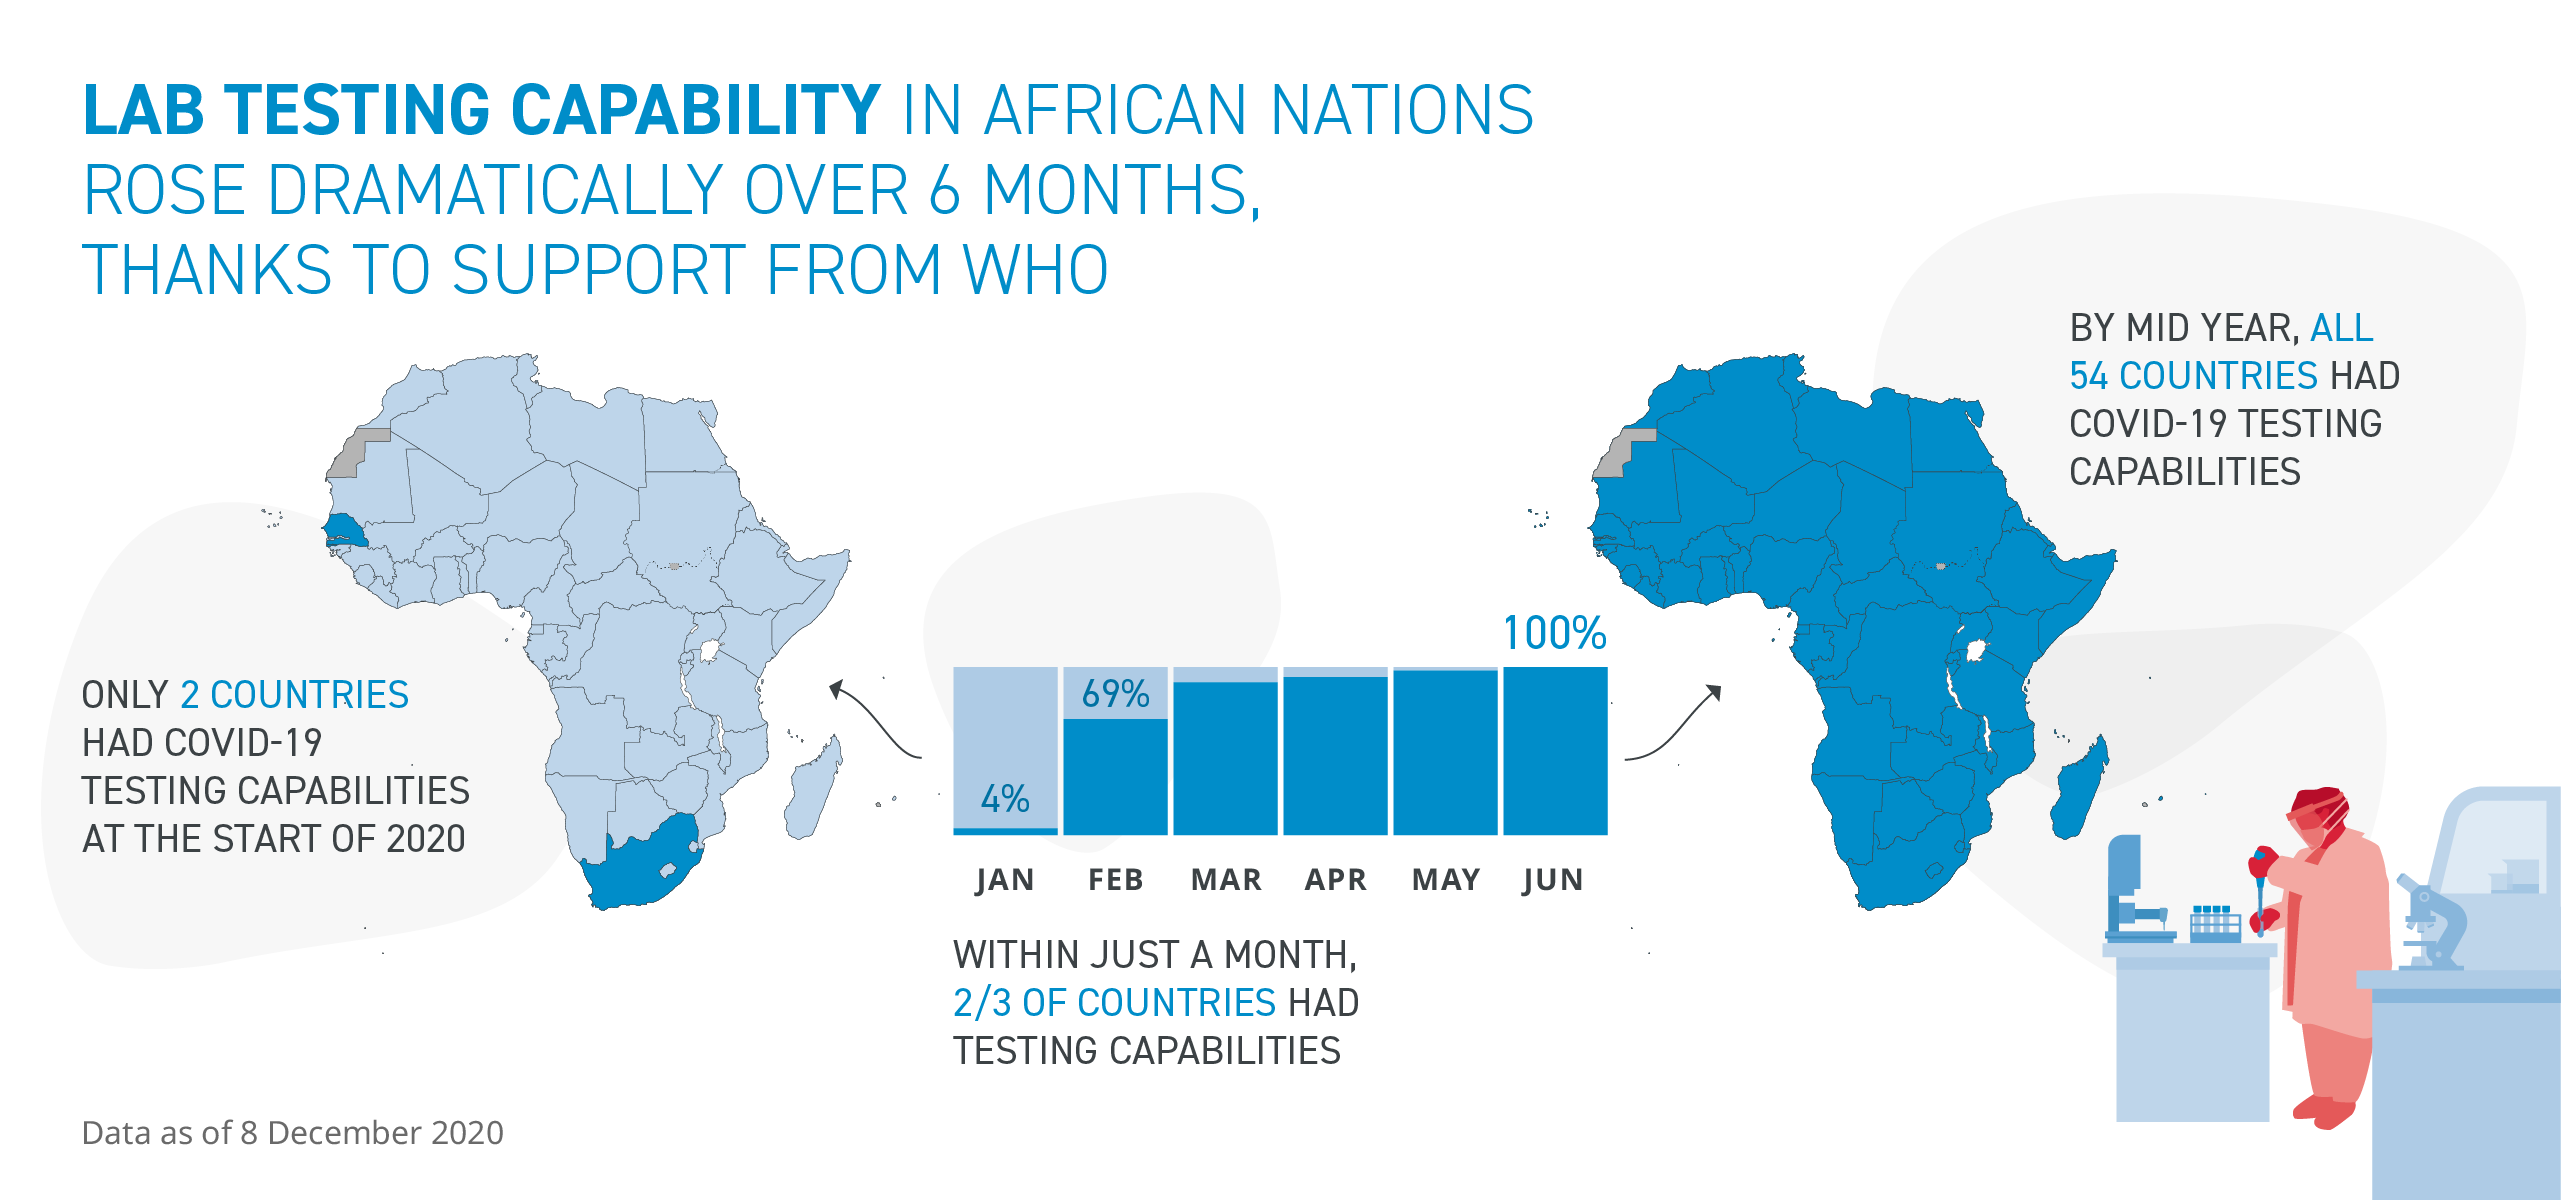 Only 2 countries in Africa had COVID-19 testing capacity at the start of 2020. By mid-year, all 54 countries had capacity.